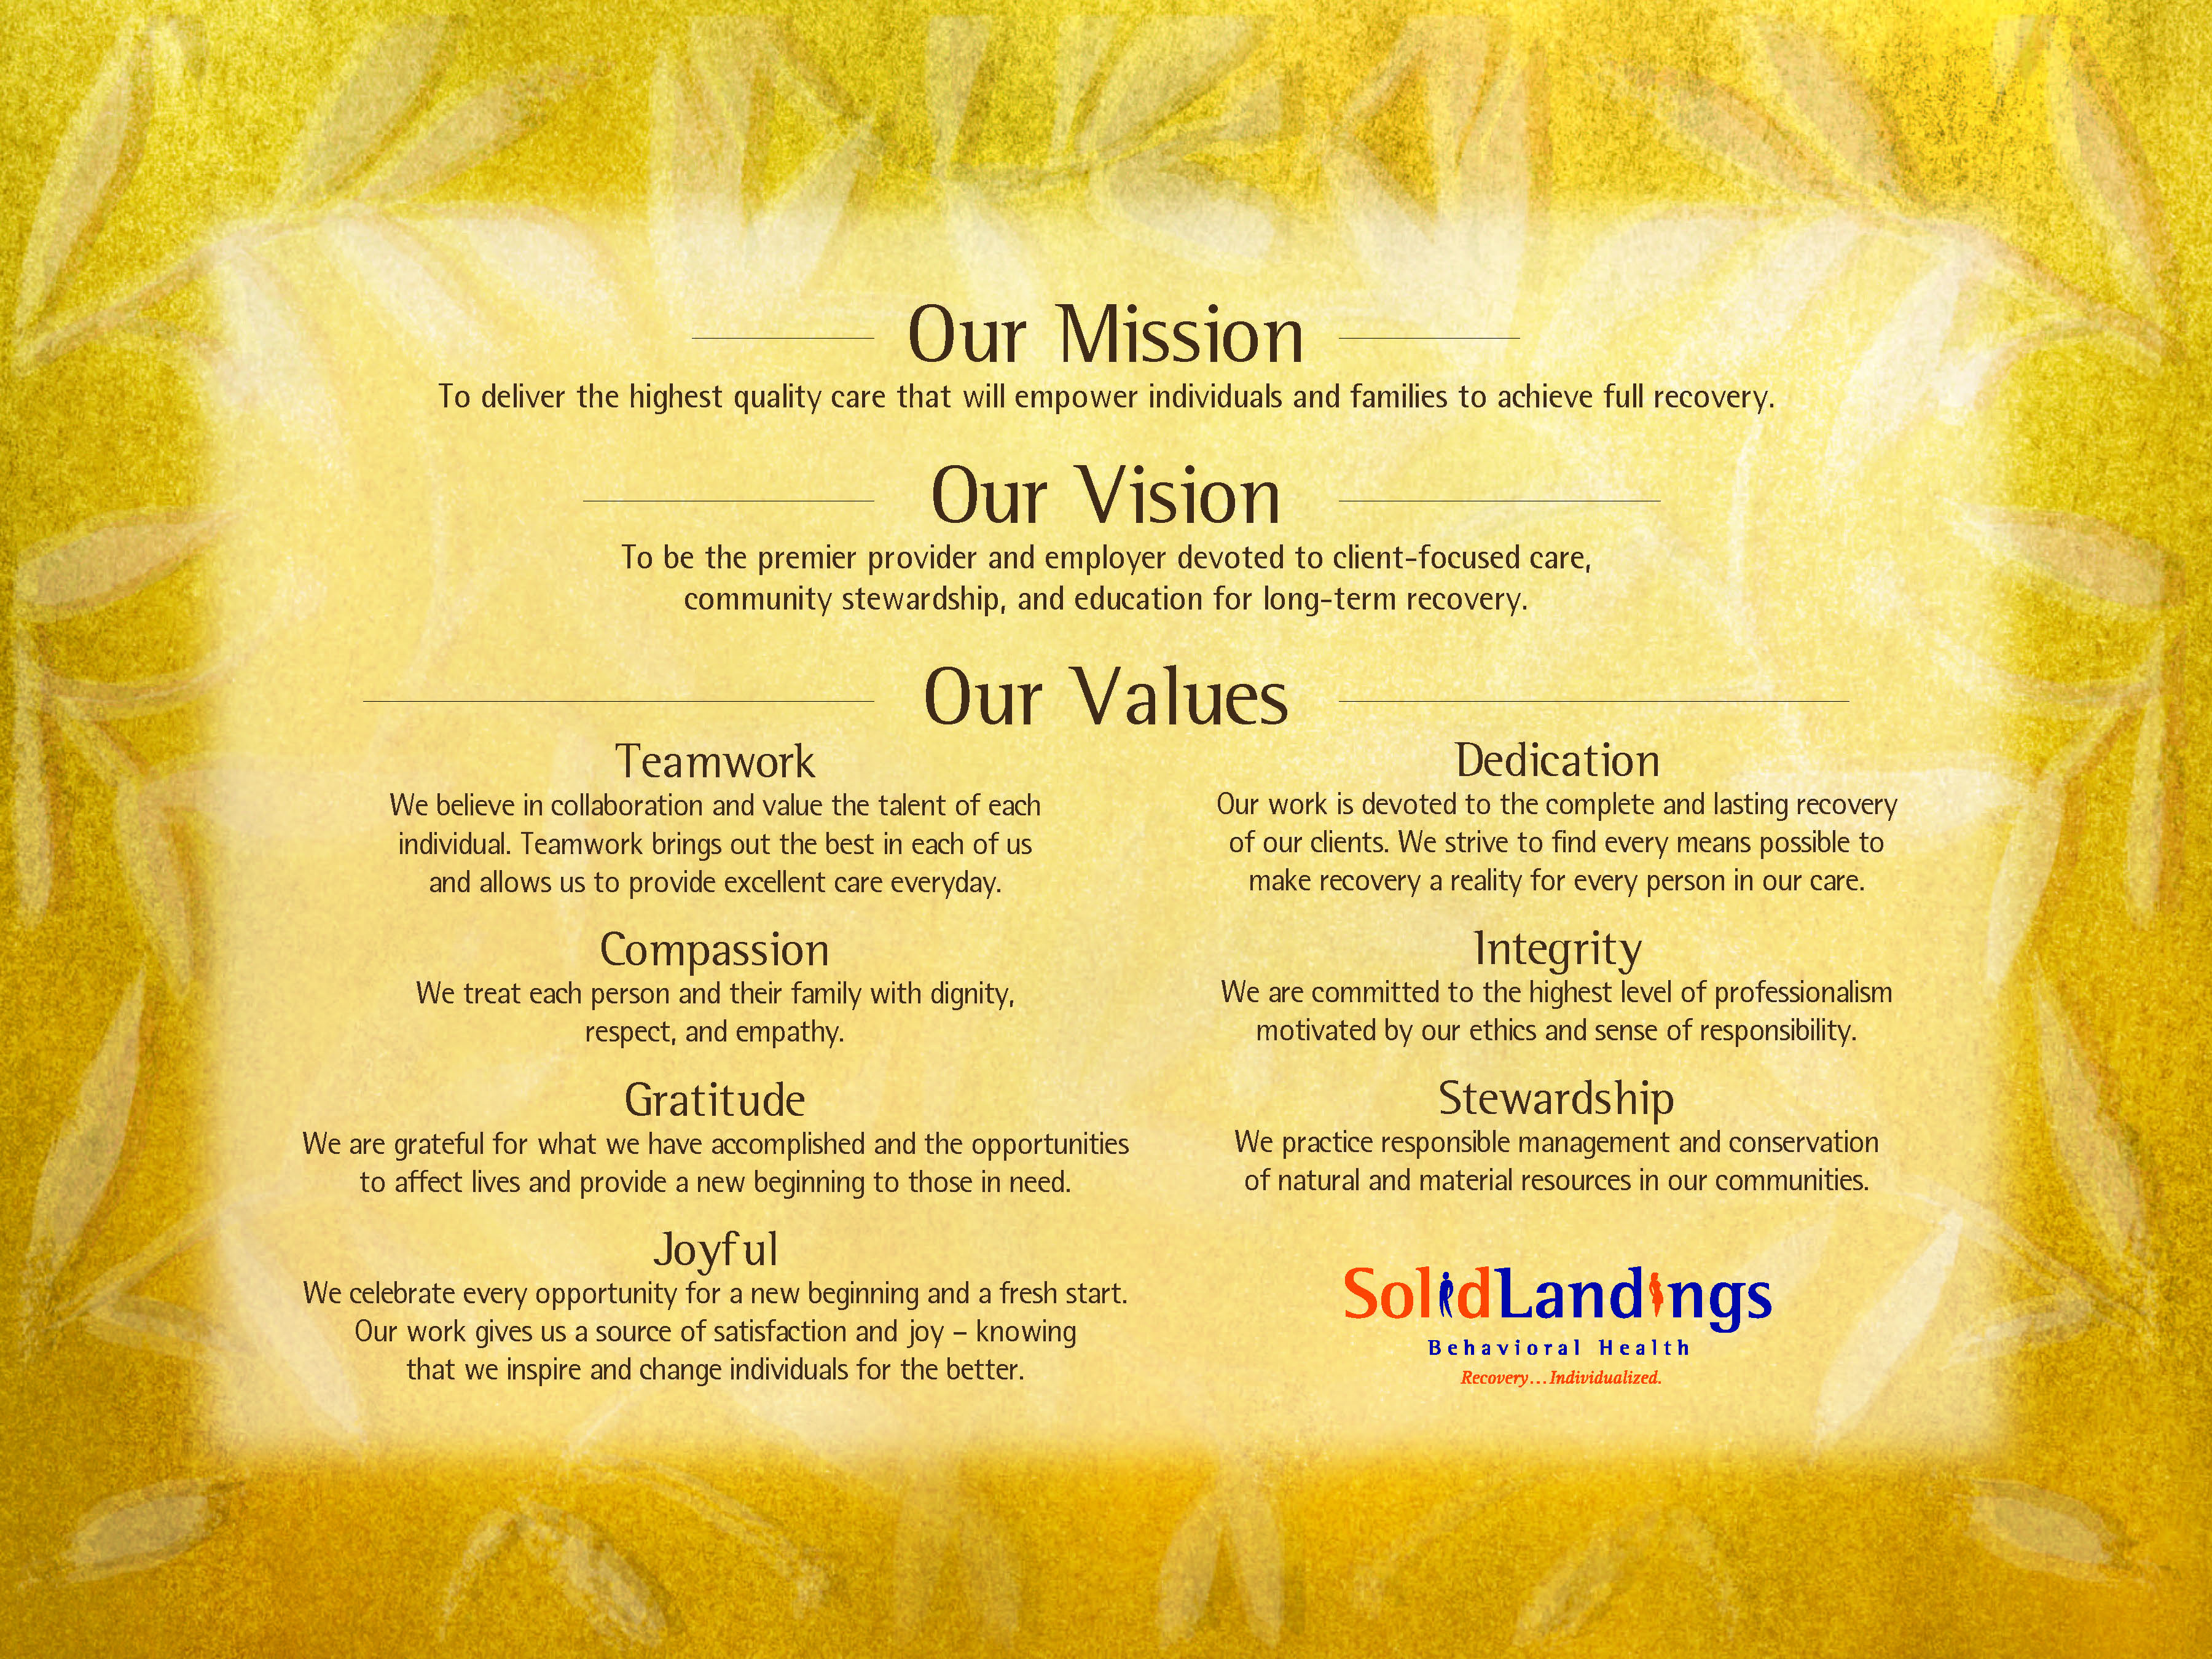 Mission statement certif1